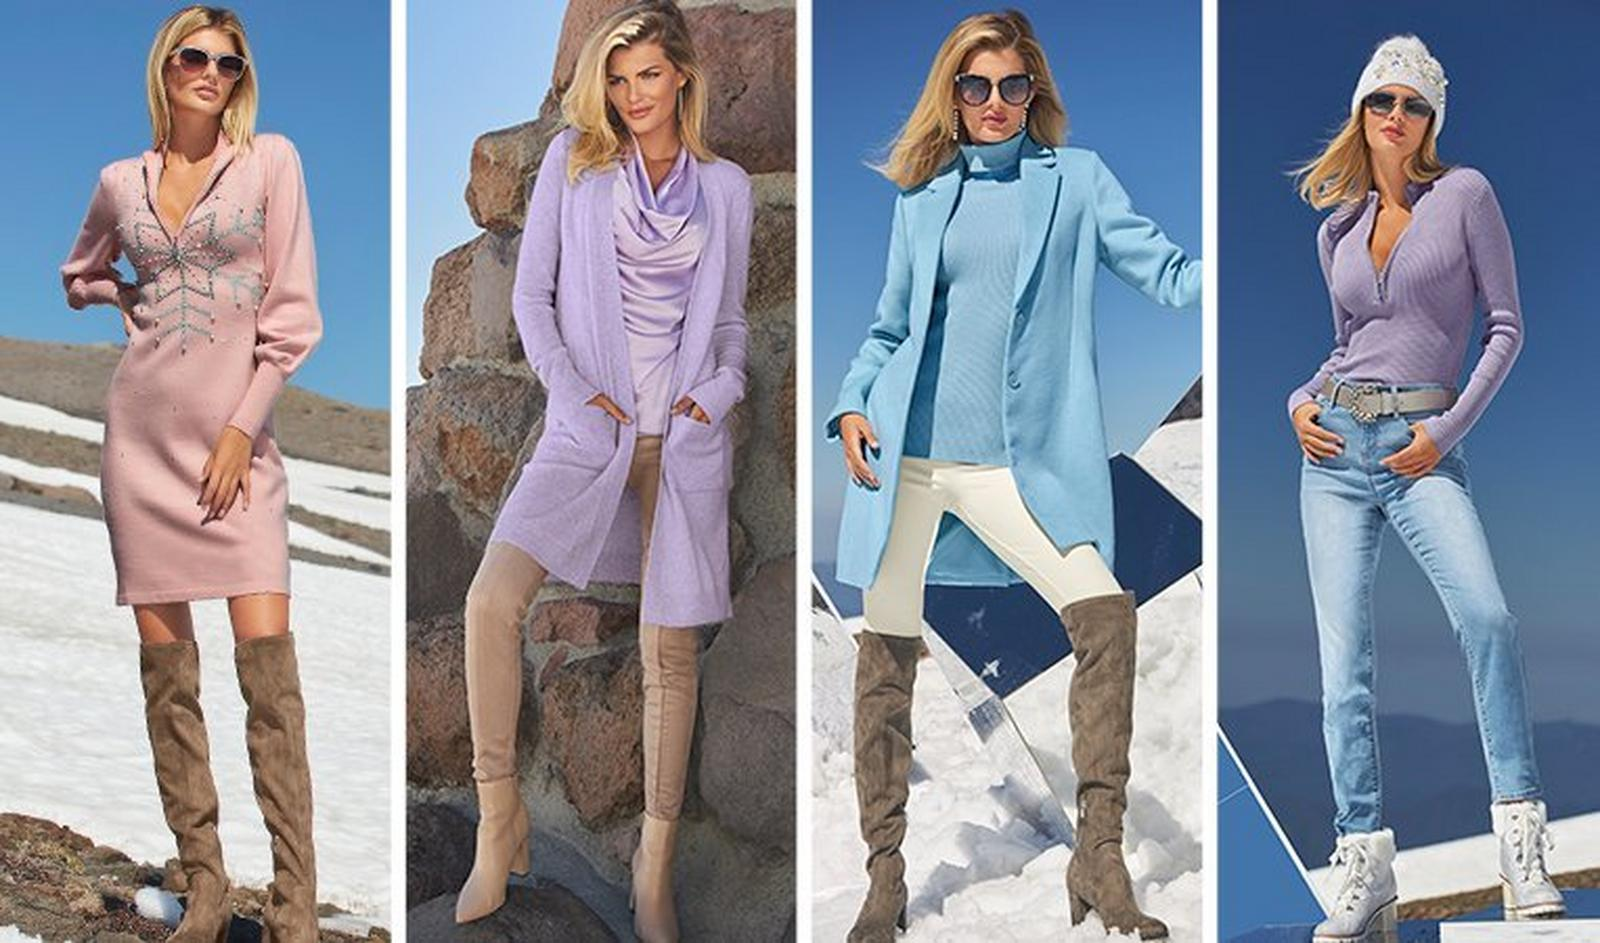 from left to right: model wearing a light pink long-sleeve sweater dress with a rhinestone snowflake embellishment and taupe over-the-knee boots. next model wearing a lavender cashmere cardigan, lavender cowl neck top, tan faux-suede leggings, and tan leather booties. next model wearing a light blue topper coat, blue ribbed turtleneck sweater, white leggings, and taupe over-the-knee leggings. last model wearing a lavender ribbed half-zip sweater, pearl embellished silver belt, light wash jeans, white faux-fur lace-up embellished boots, and white pearl embellished beanie.